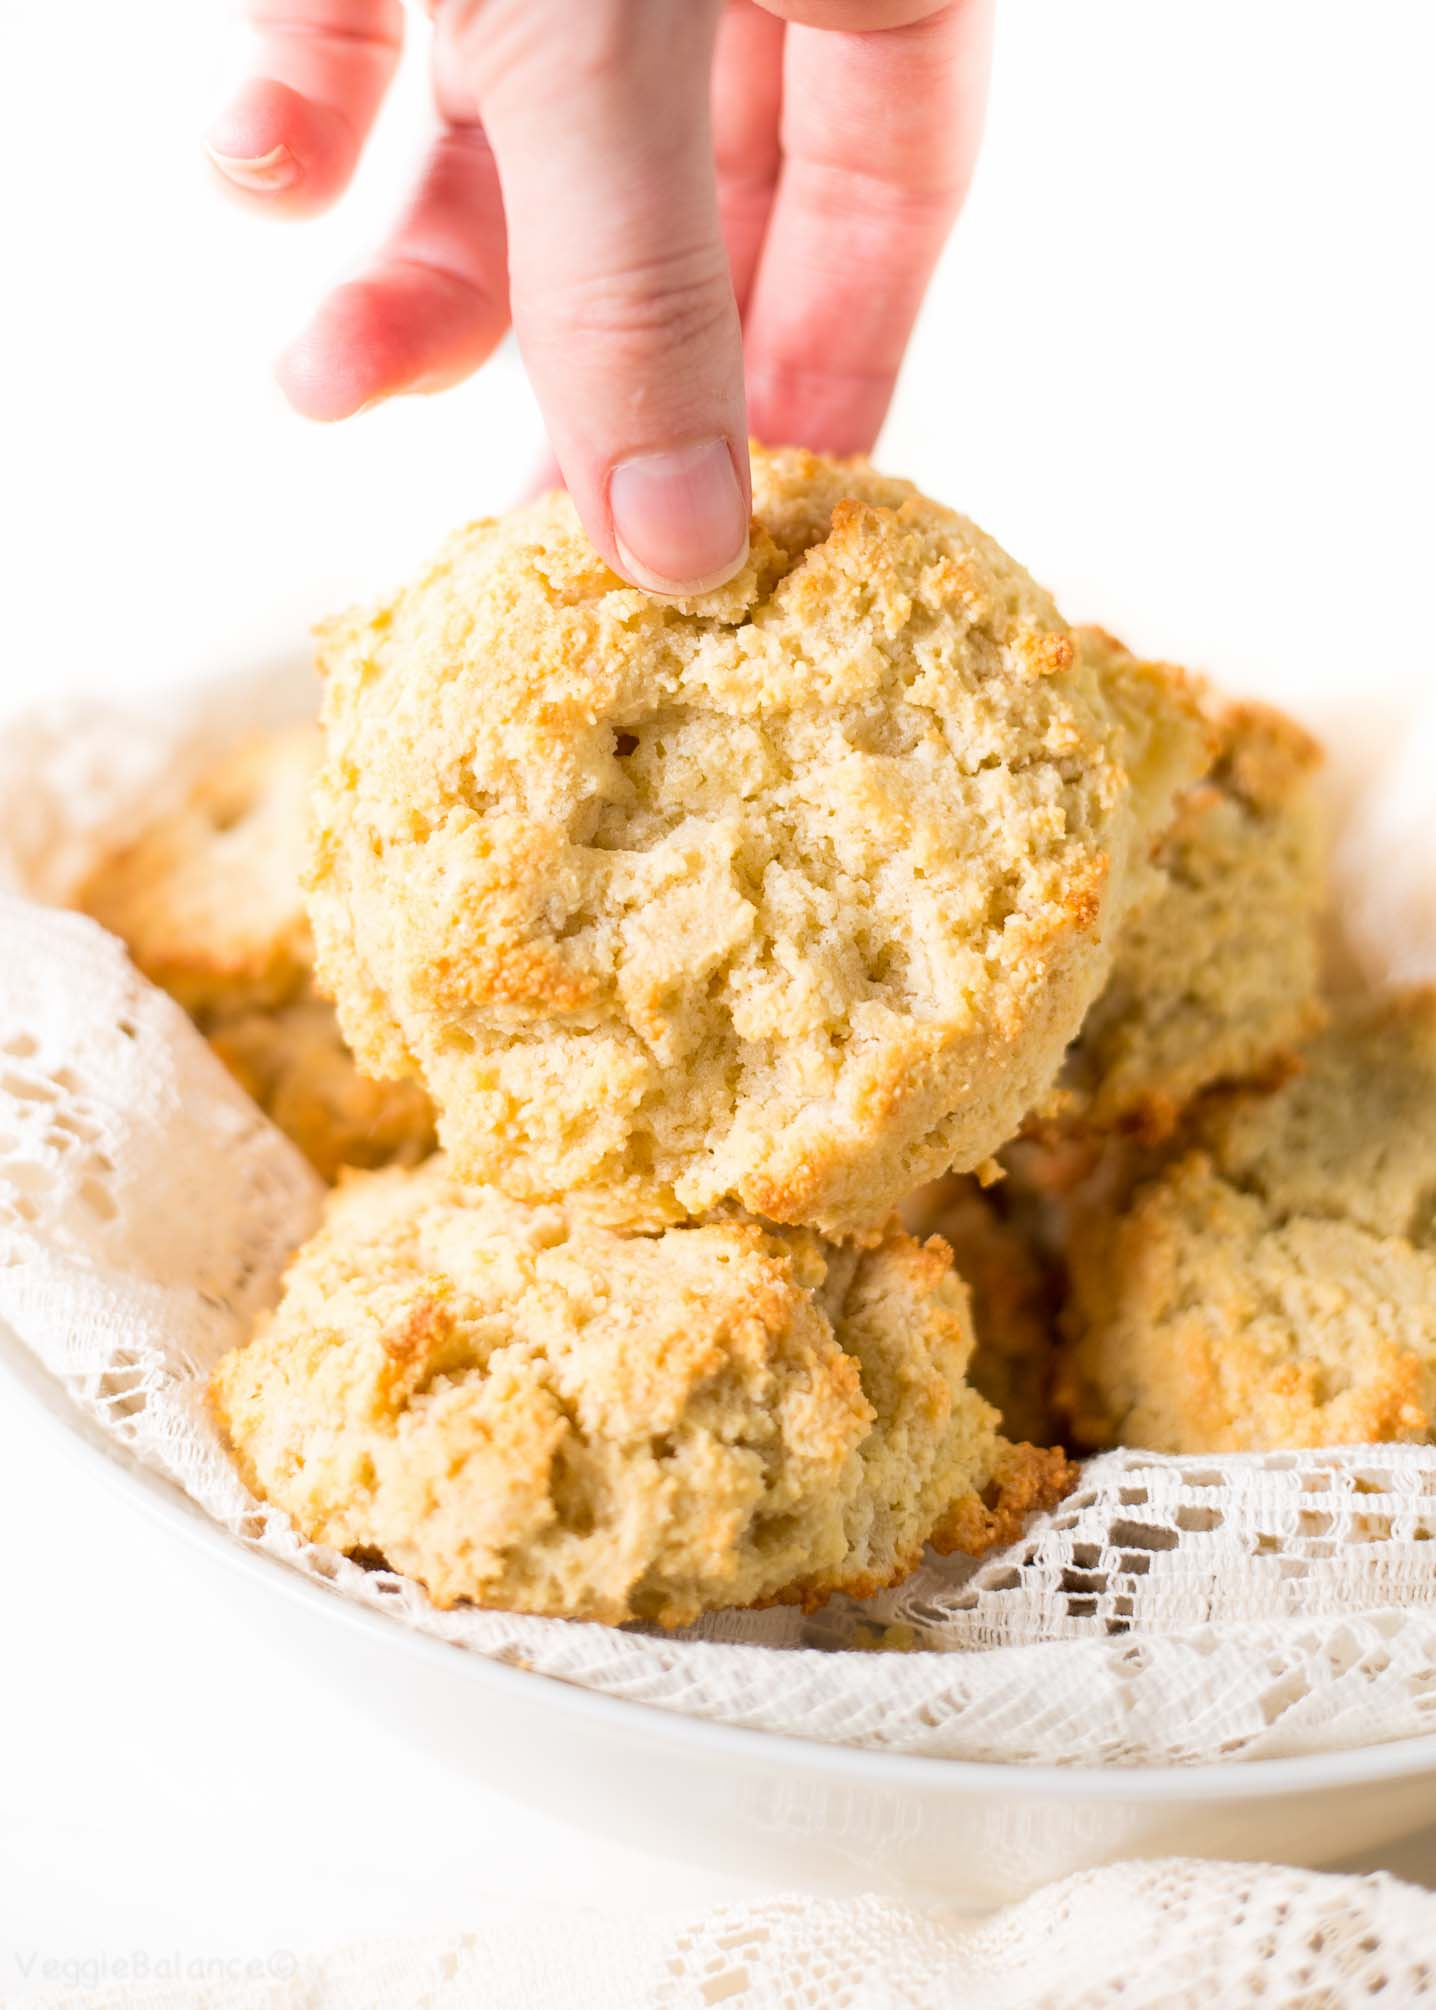 Almond Flour Biscuits (Healthy Low Carb Biscuits)